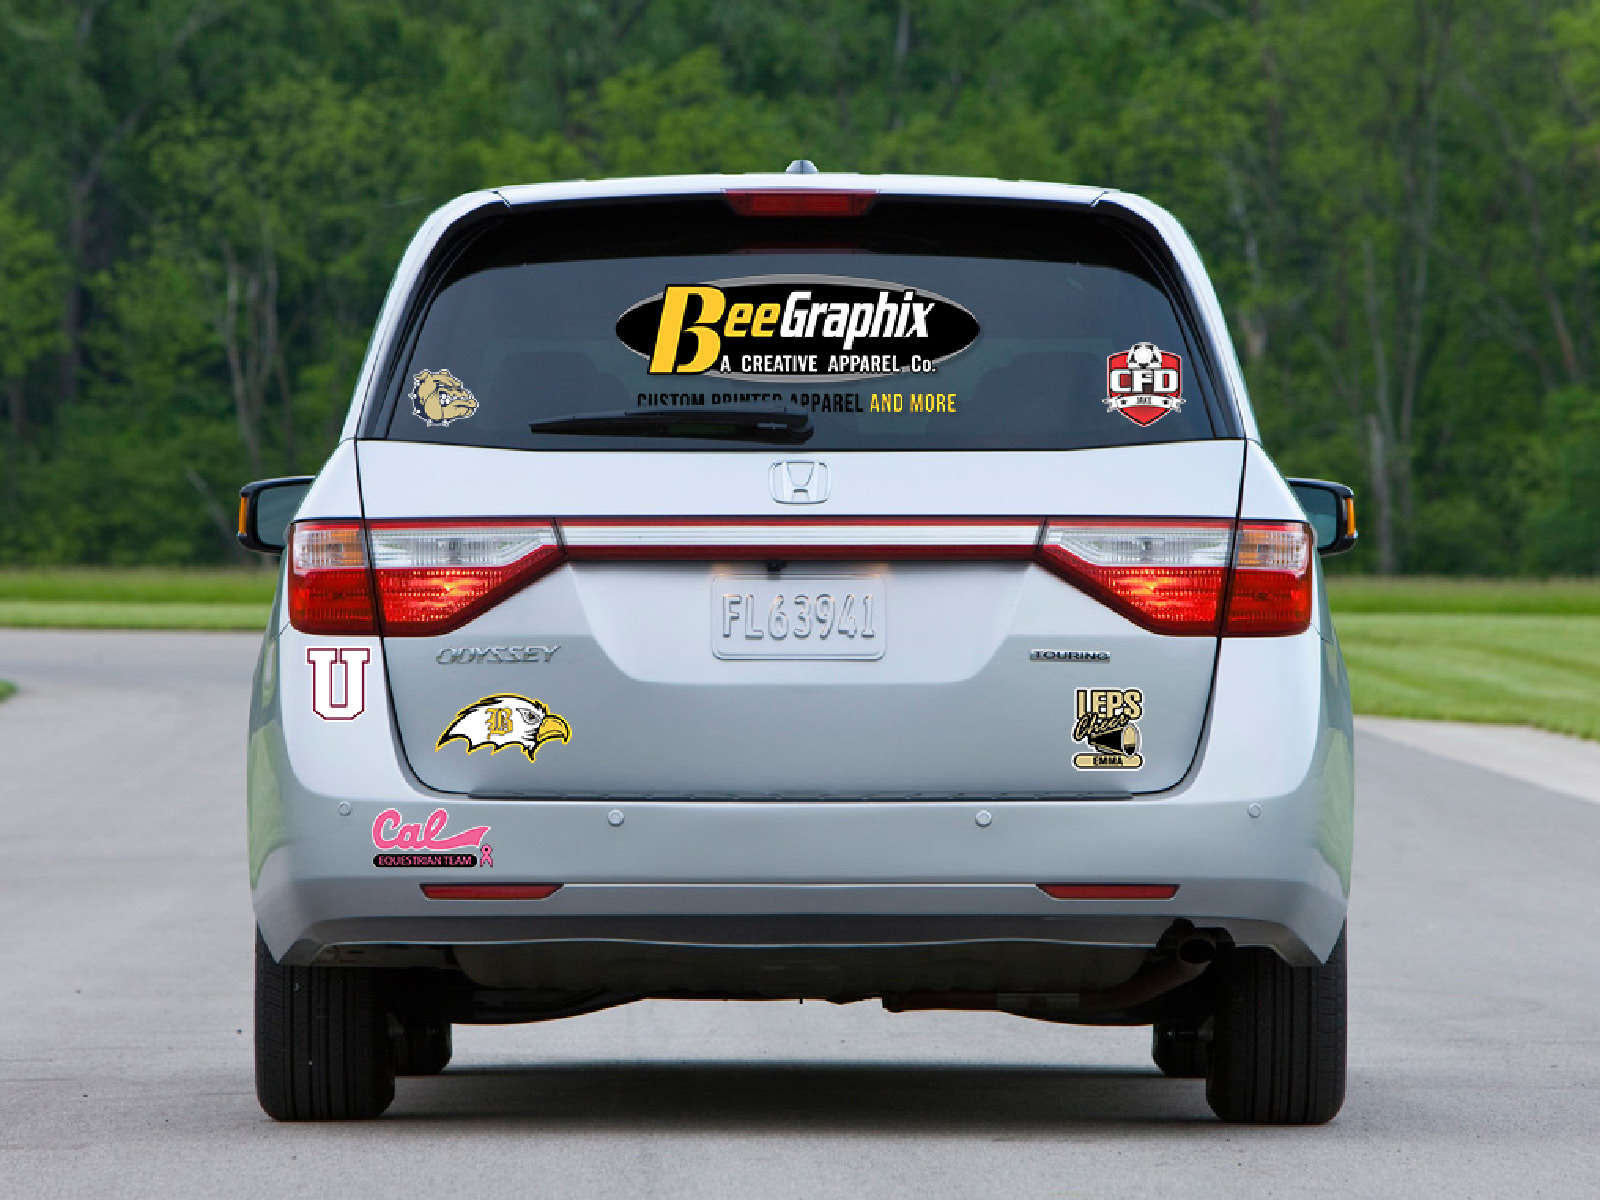 STICKERS & DECALS - Looking for new ways to market your group, event or company? Stickers and decals can turn anything into an advertisement in seconds! Company logos, sports teams, promotional stickers, hard hat decals, helmet decals, bumper stickers, souvenirs, personal expression and more!